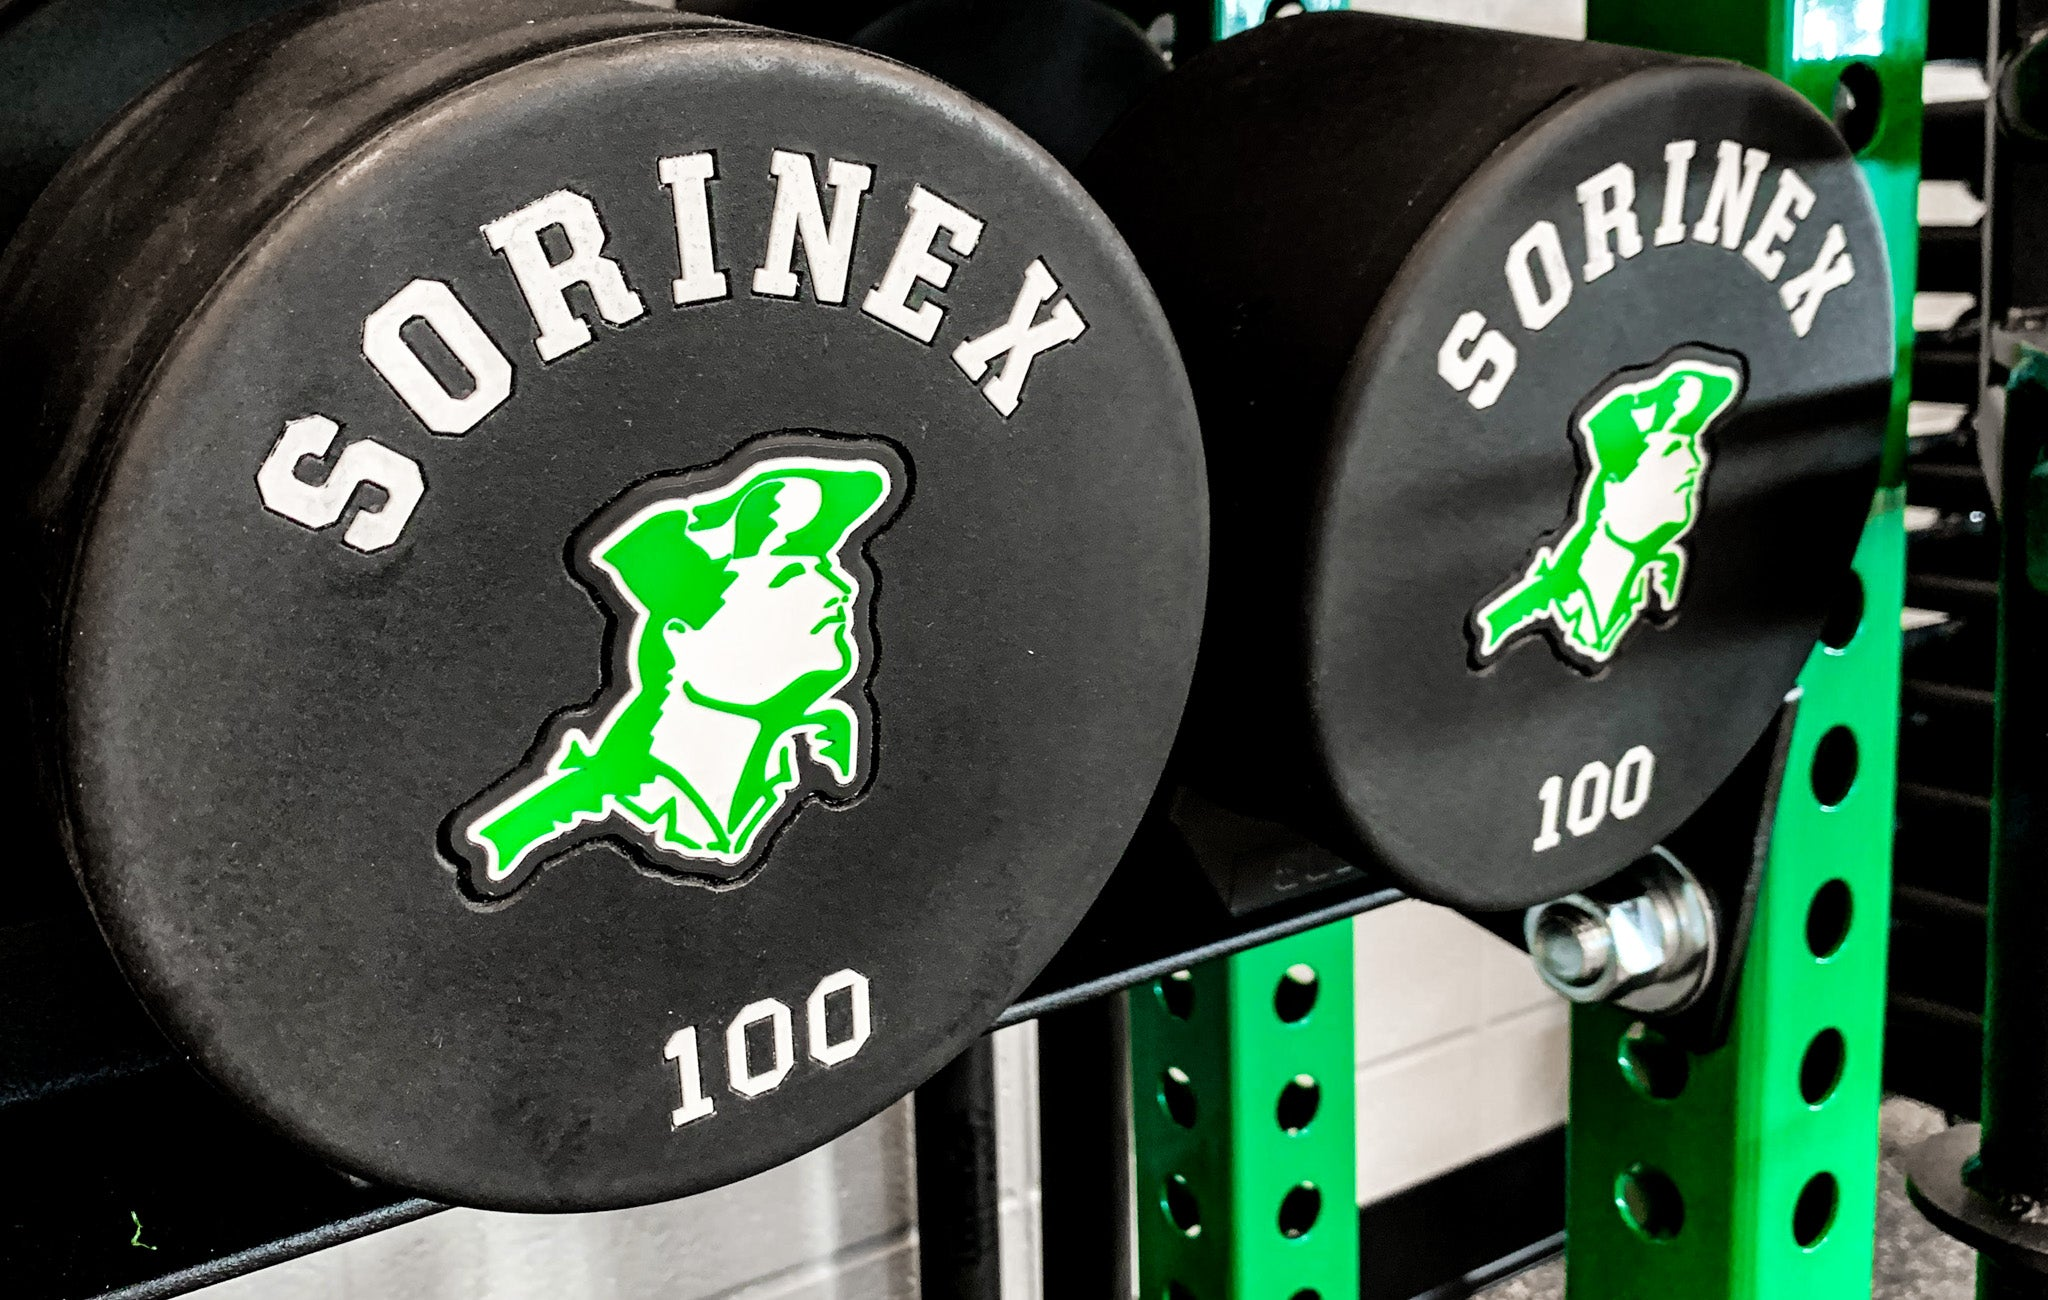 Concord High School Custom Sorinex Weight Room